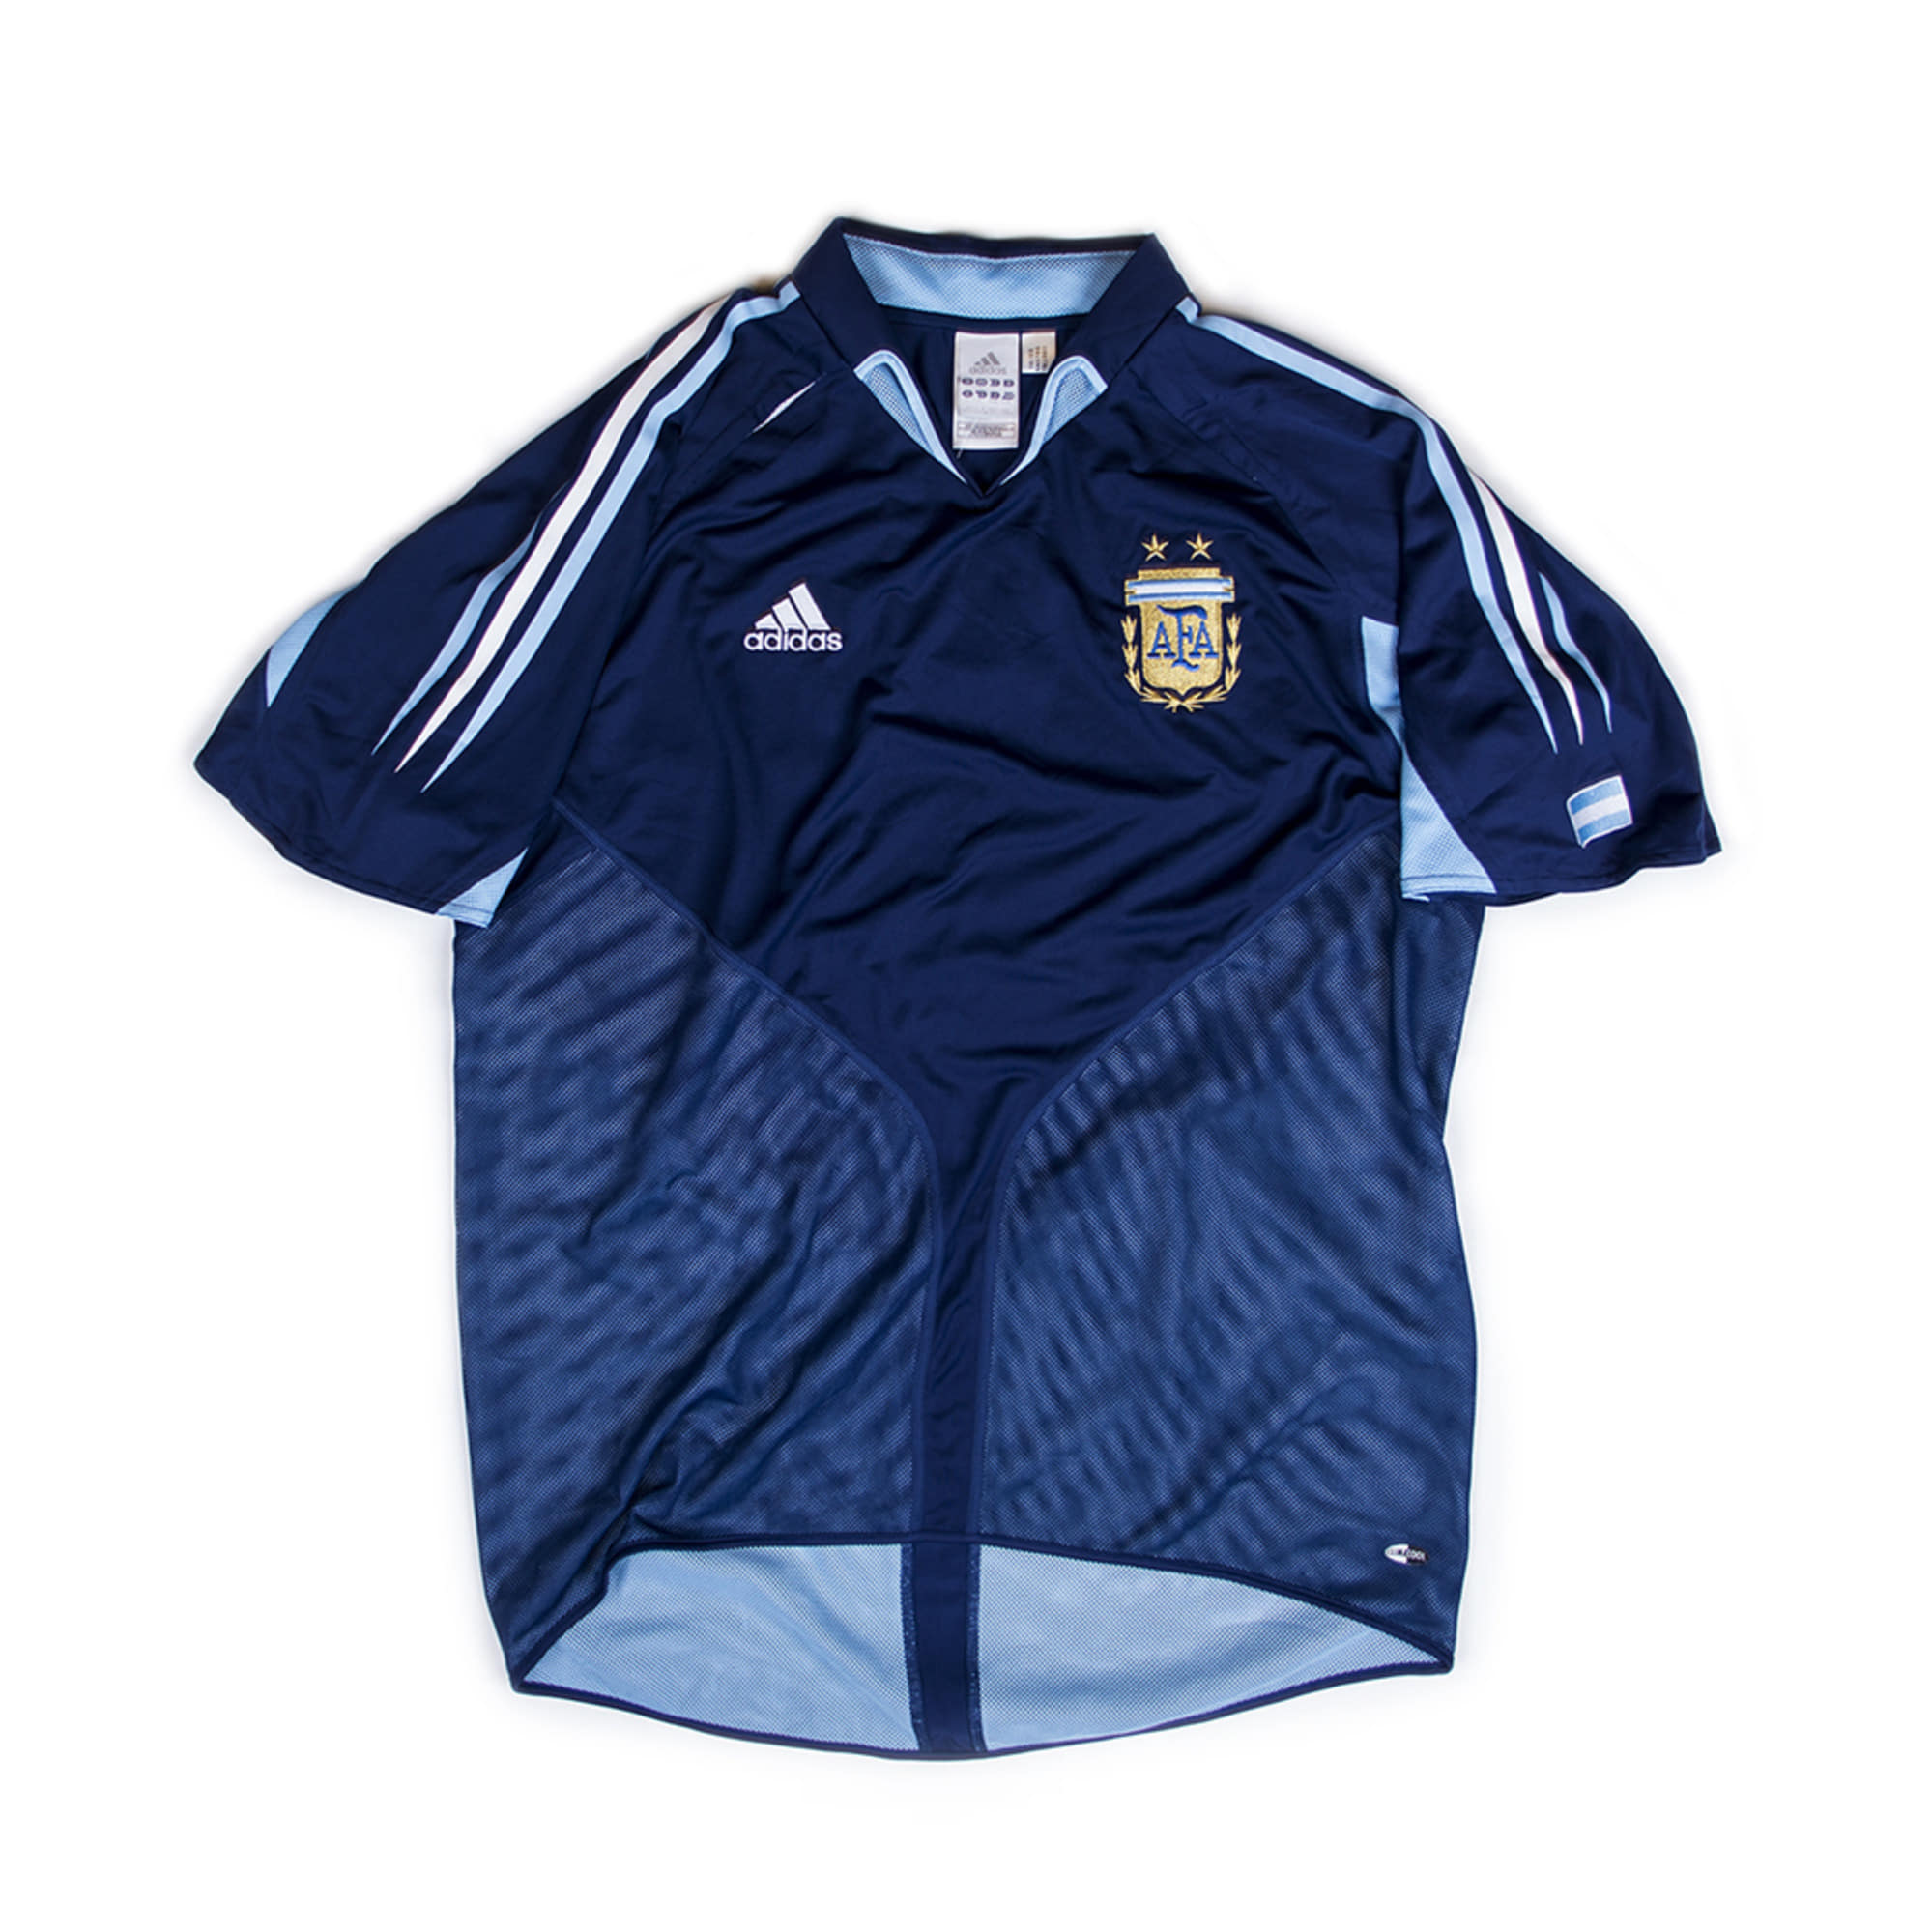 ARGENTINA 2004-06 AWAY S/S JERSEY (BNWT)